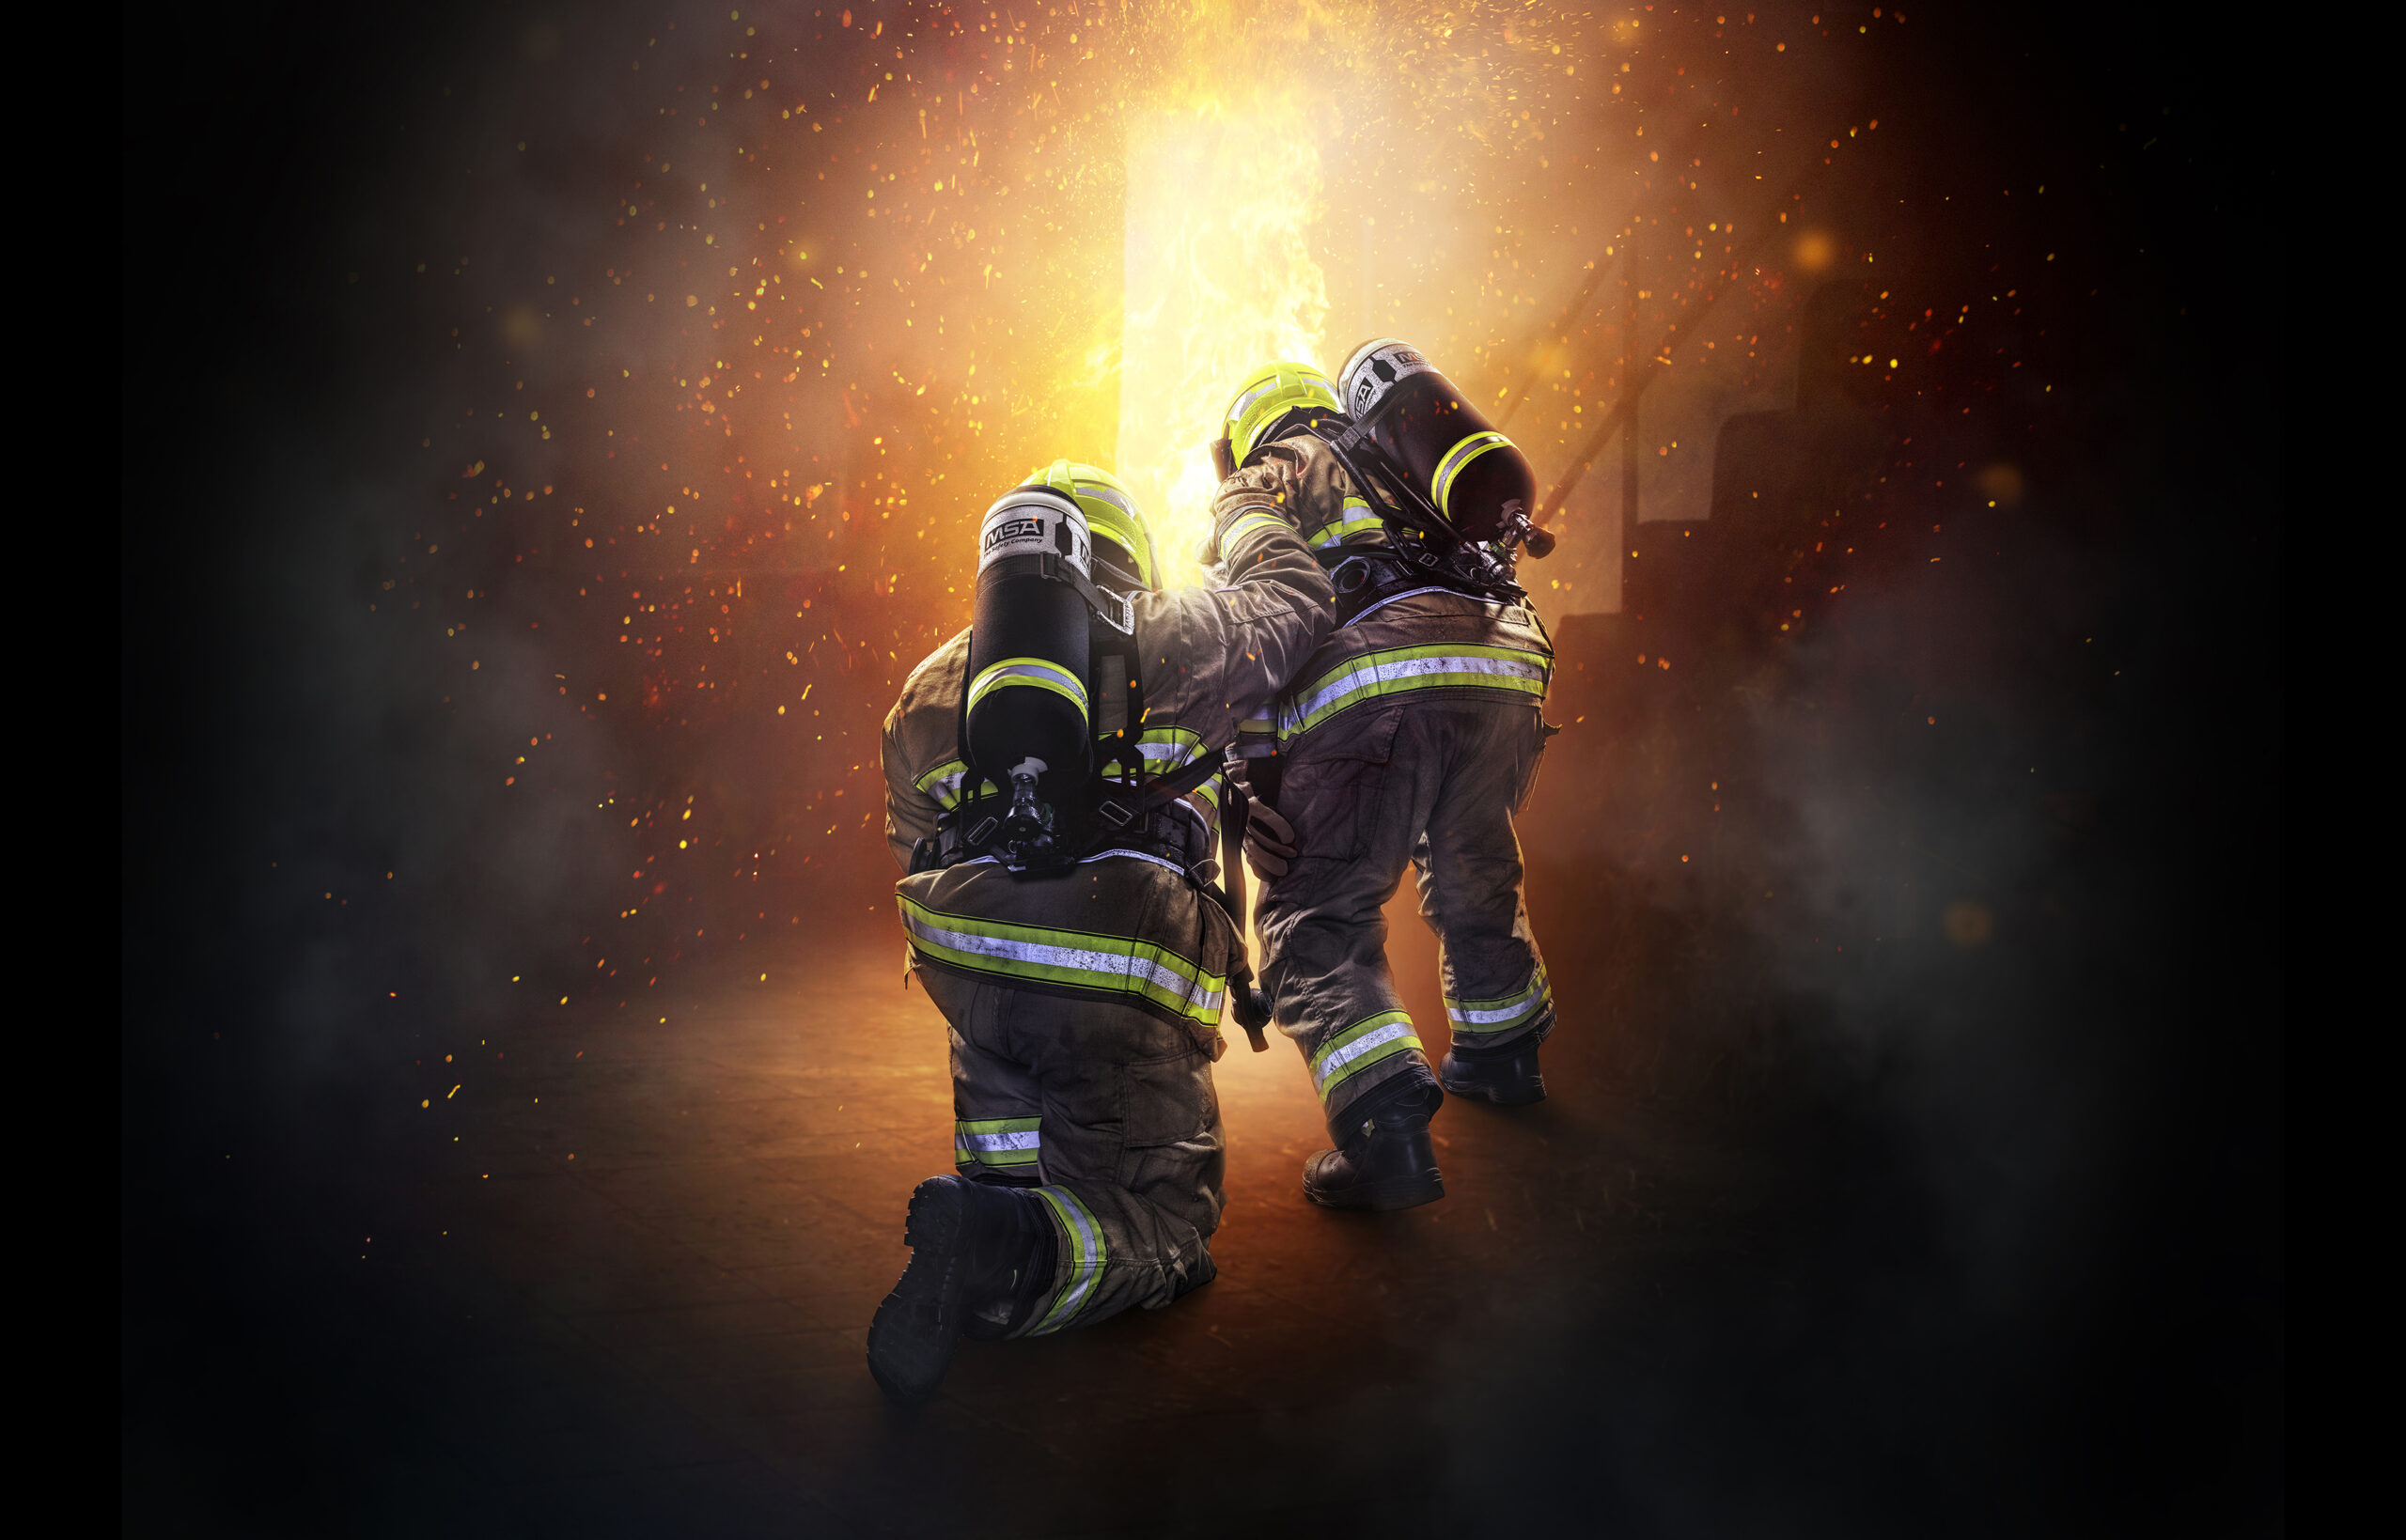 Telemetry, Technology and Connectivity: How can innovation improve firefighter safety?